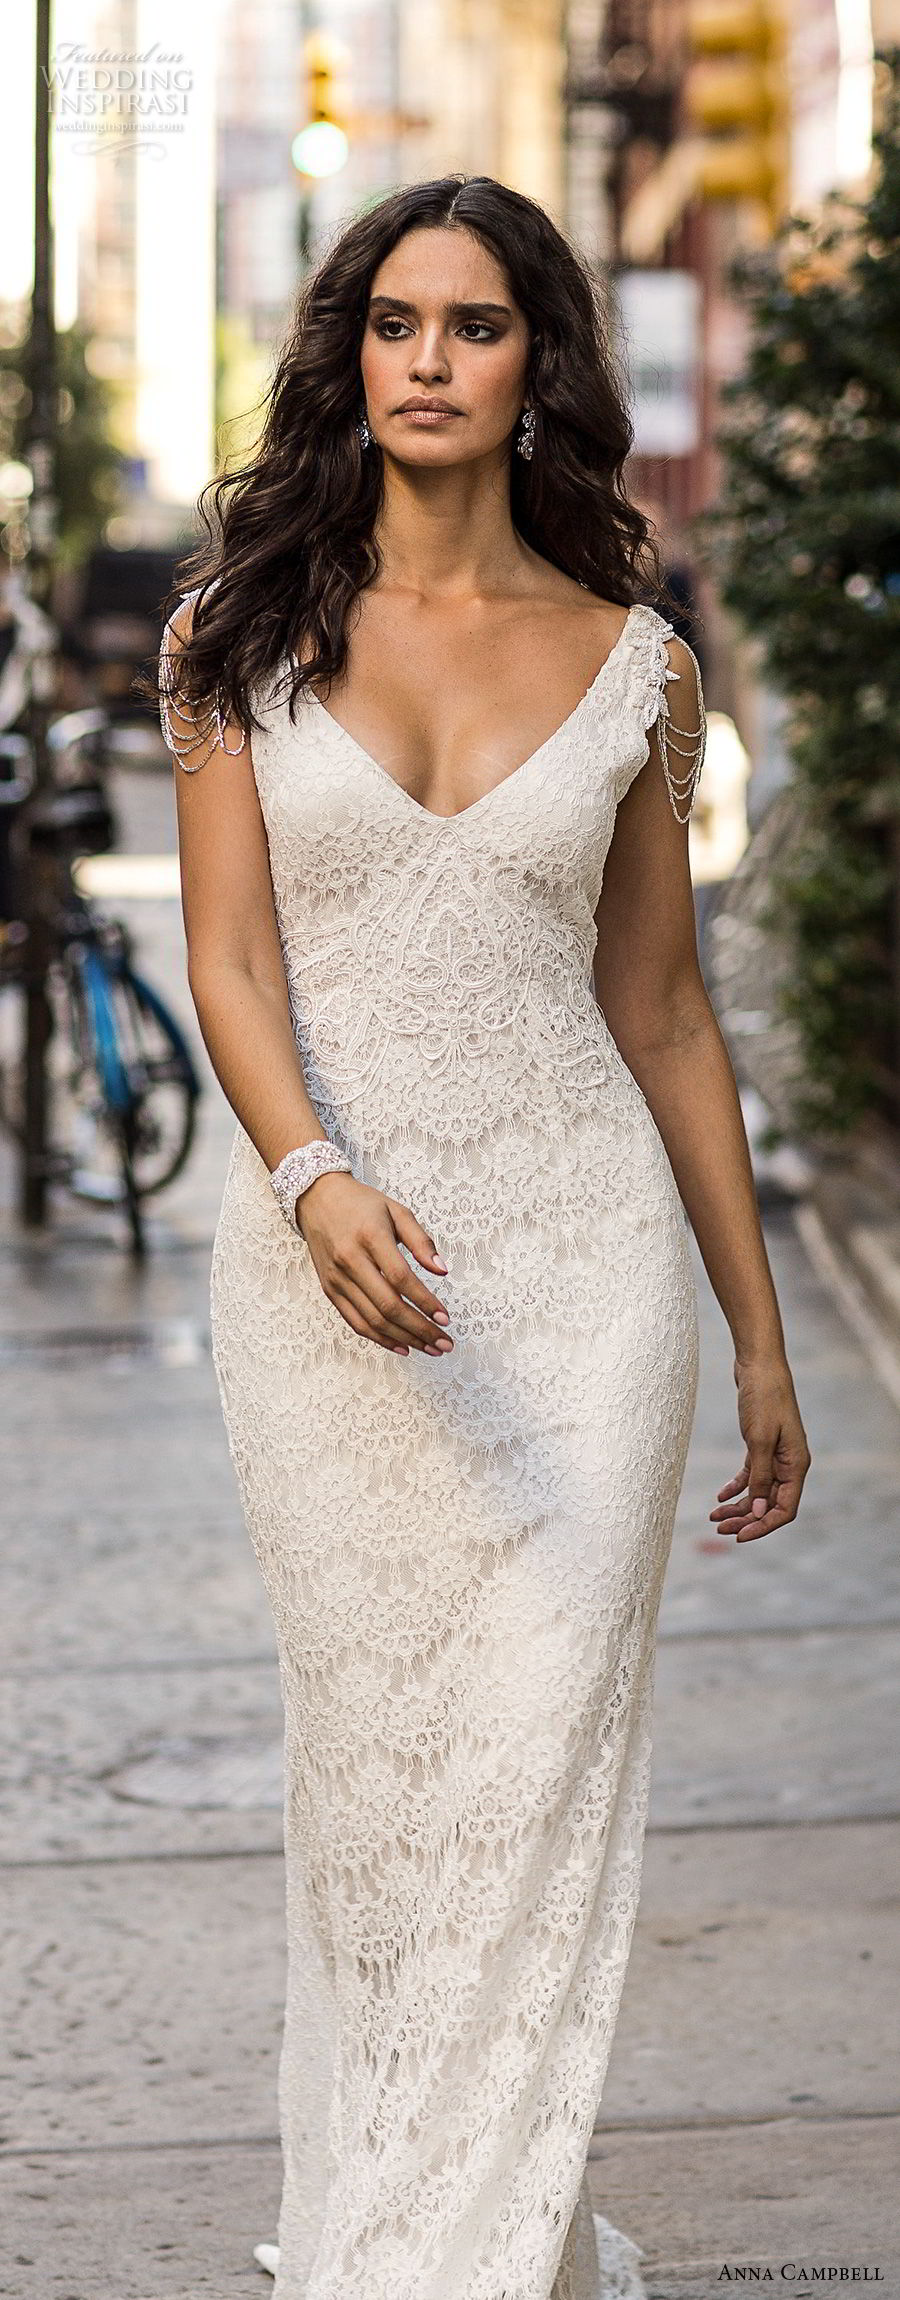 anna cambell fall 2018 bridal sleeveless v neck full embellishment elegant romantic fit and flare sheath wedding dress open v back sweep train (6) mv